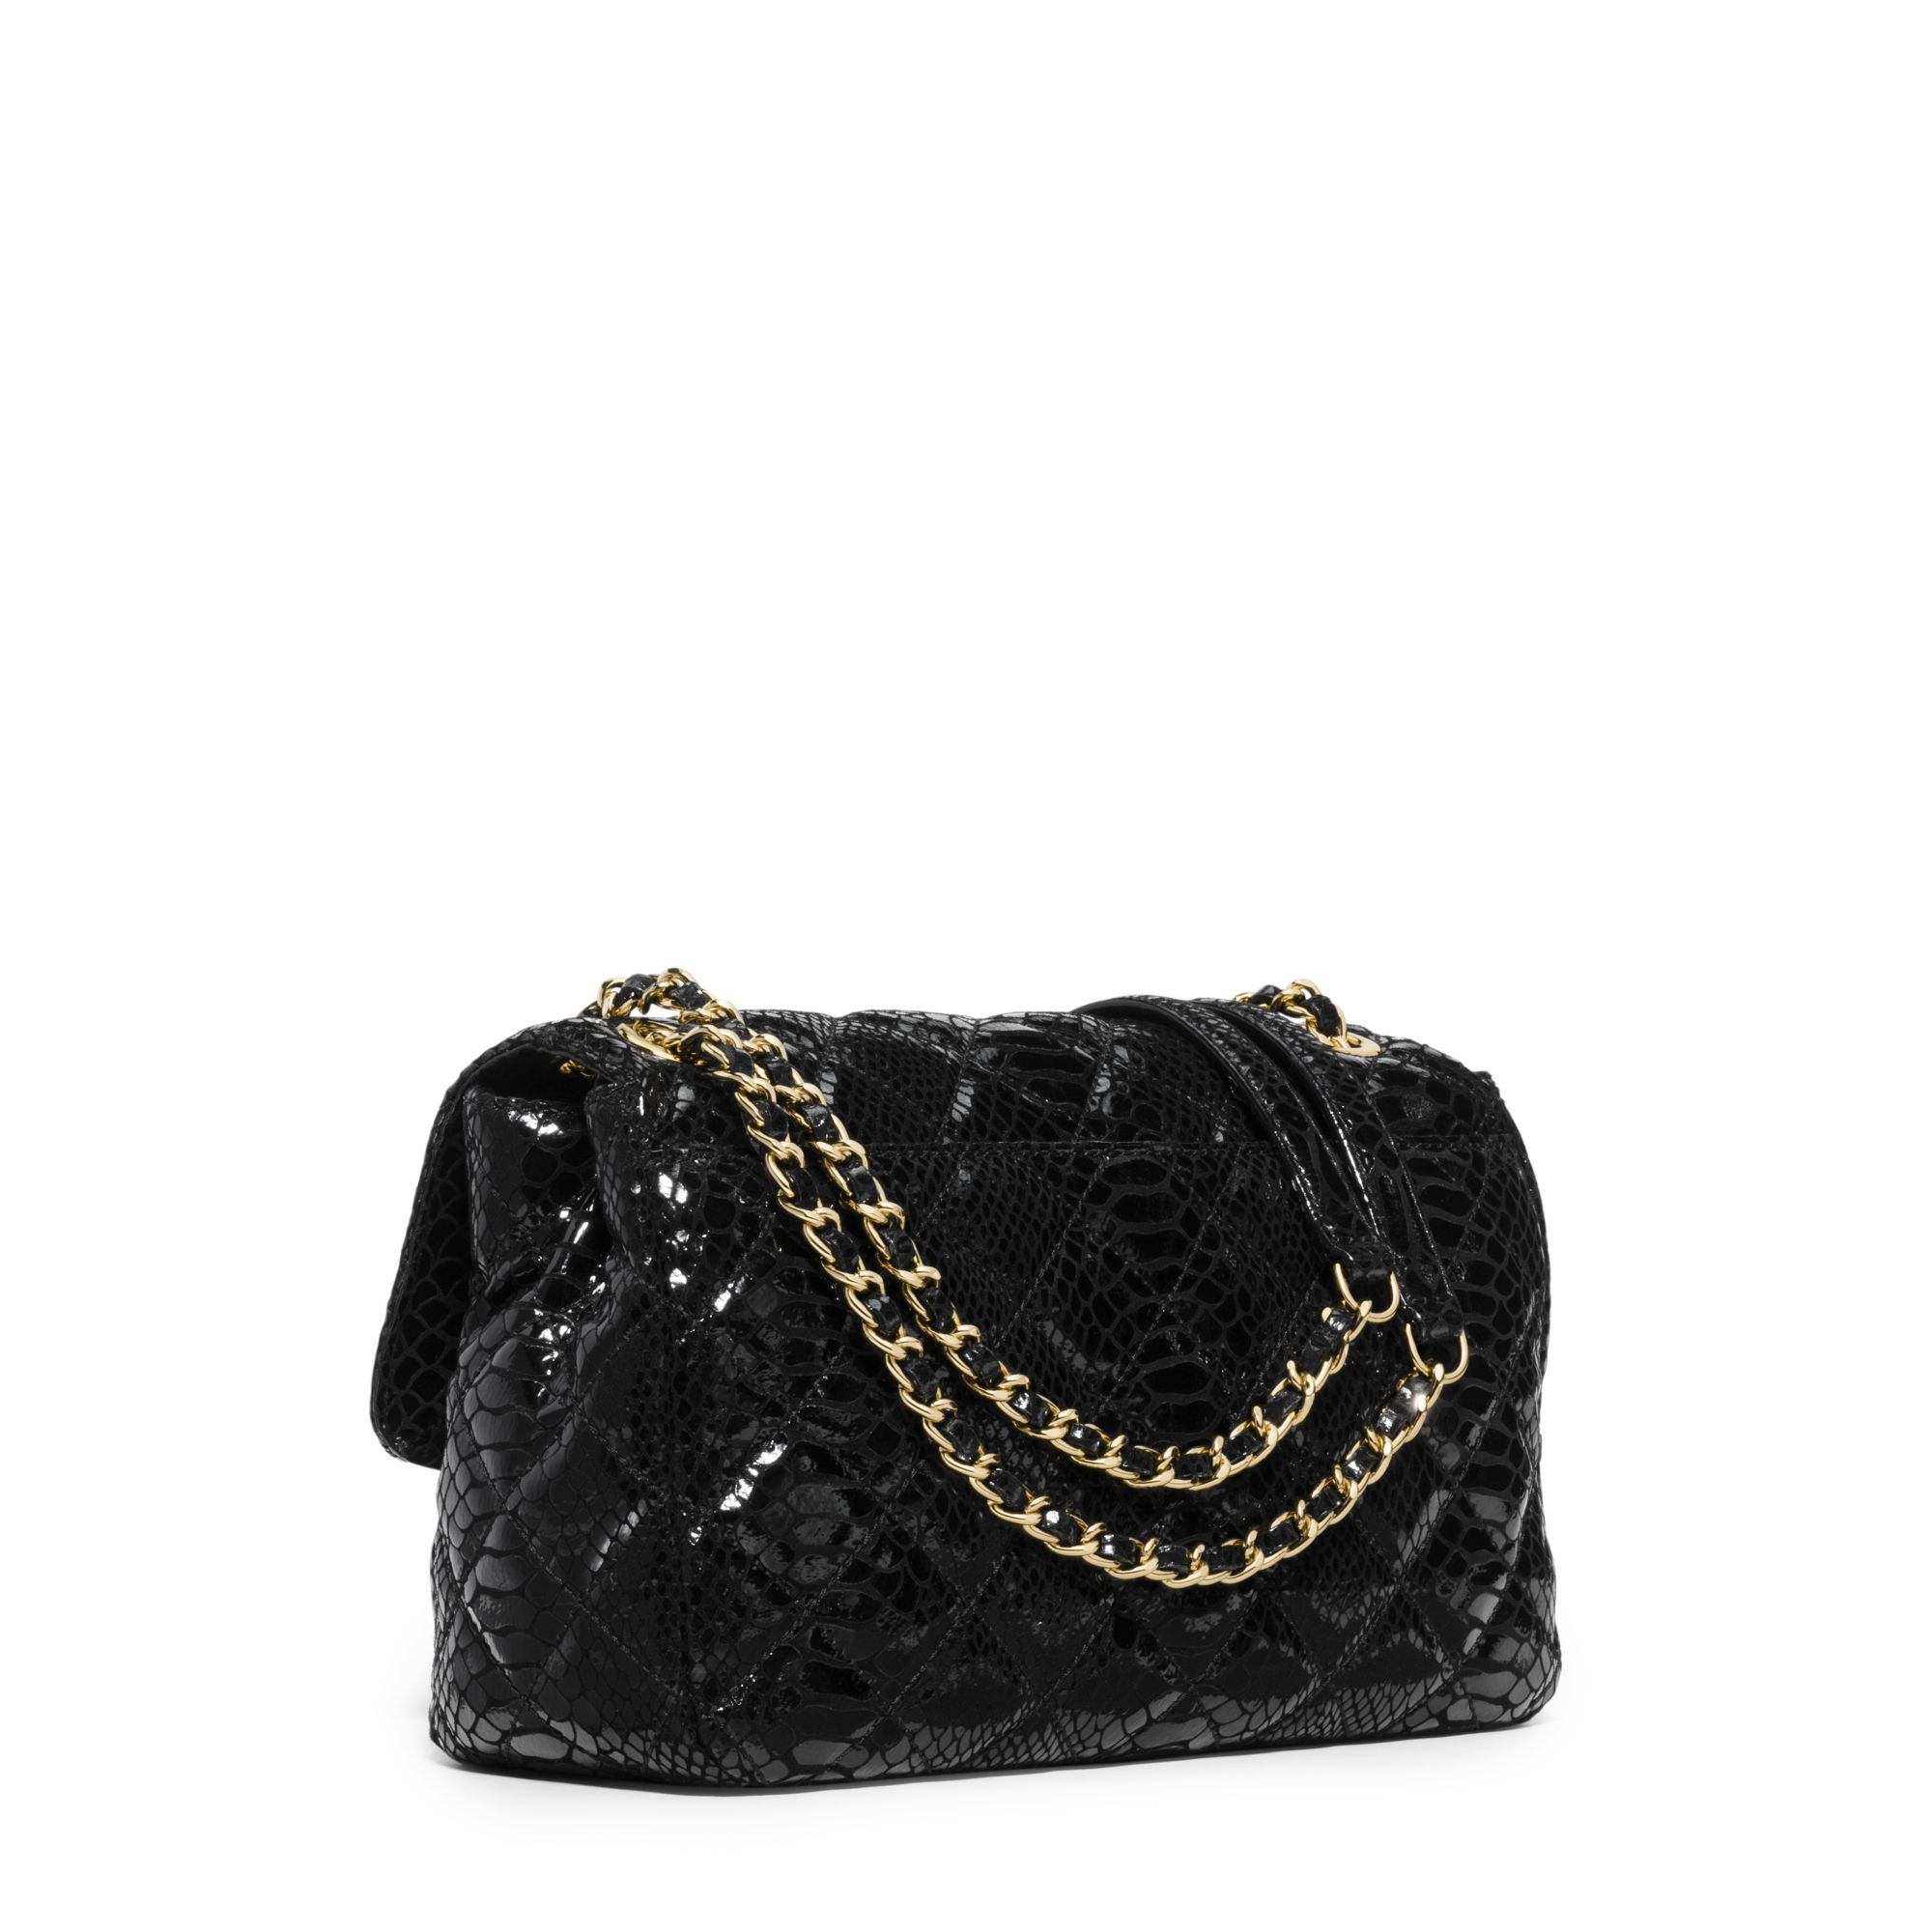 7aa8e39578f07 Lyst - Michael Kors Sloan Large Embossed Patent-leather Crossbody in Black